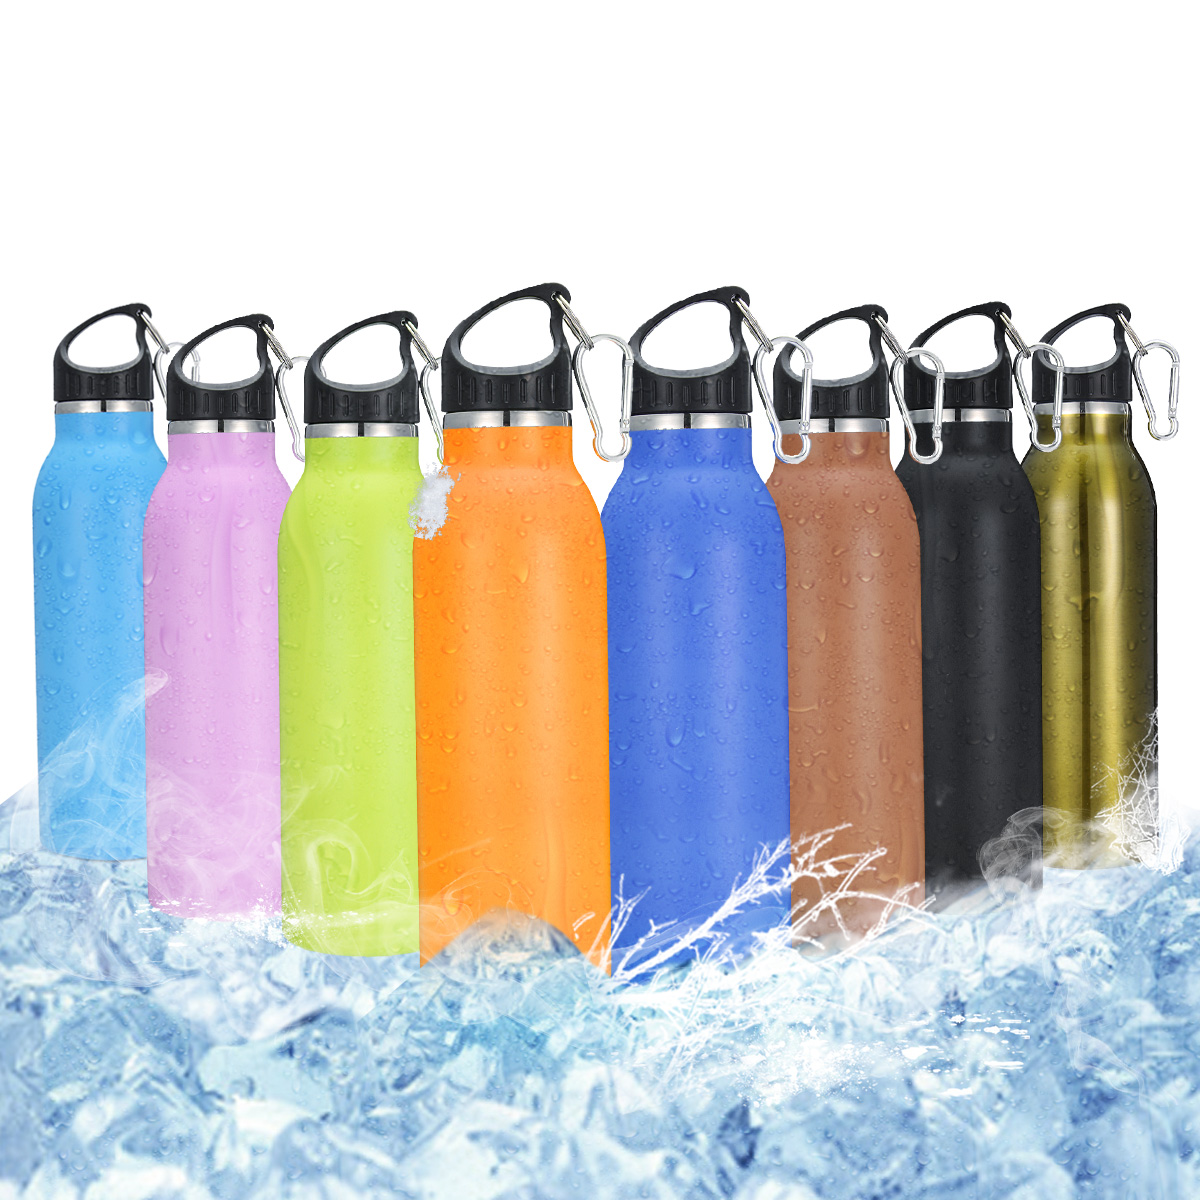 KING DO WAY Vacuum Stainless Steel sportsbottle Water Bottle with 8 Colors Available Simple Shape for Work, Outdoor Transport, Travel Use